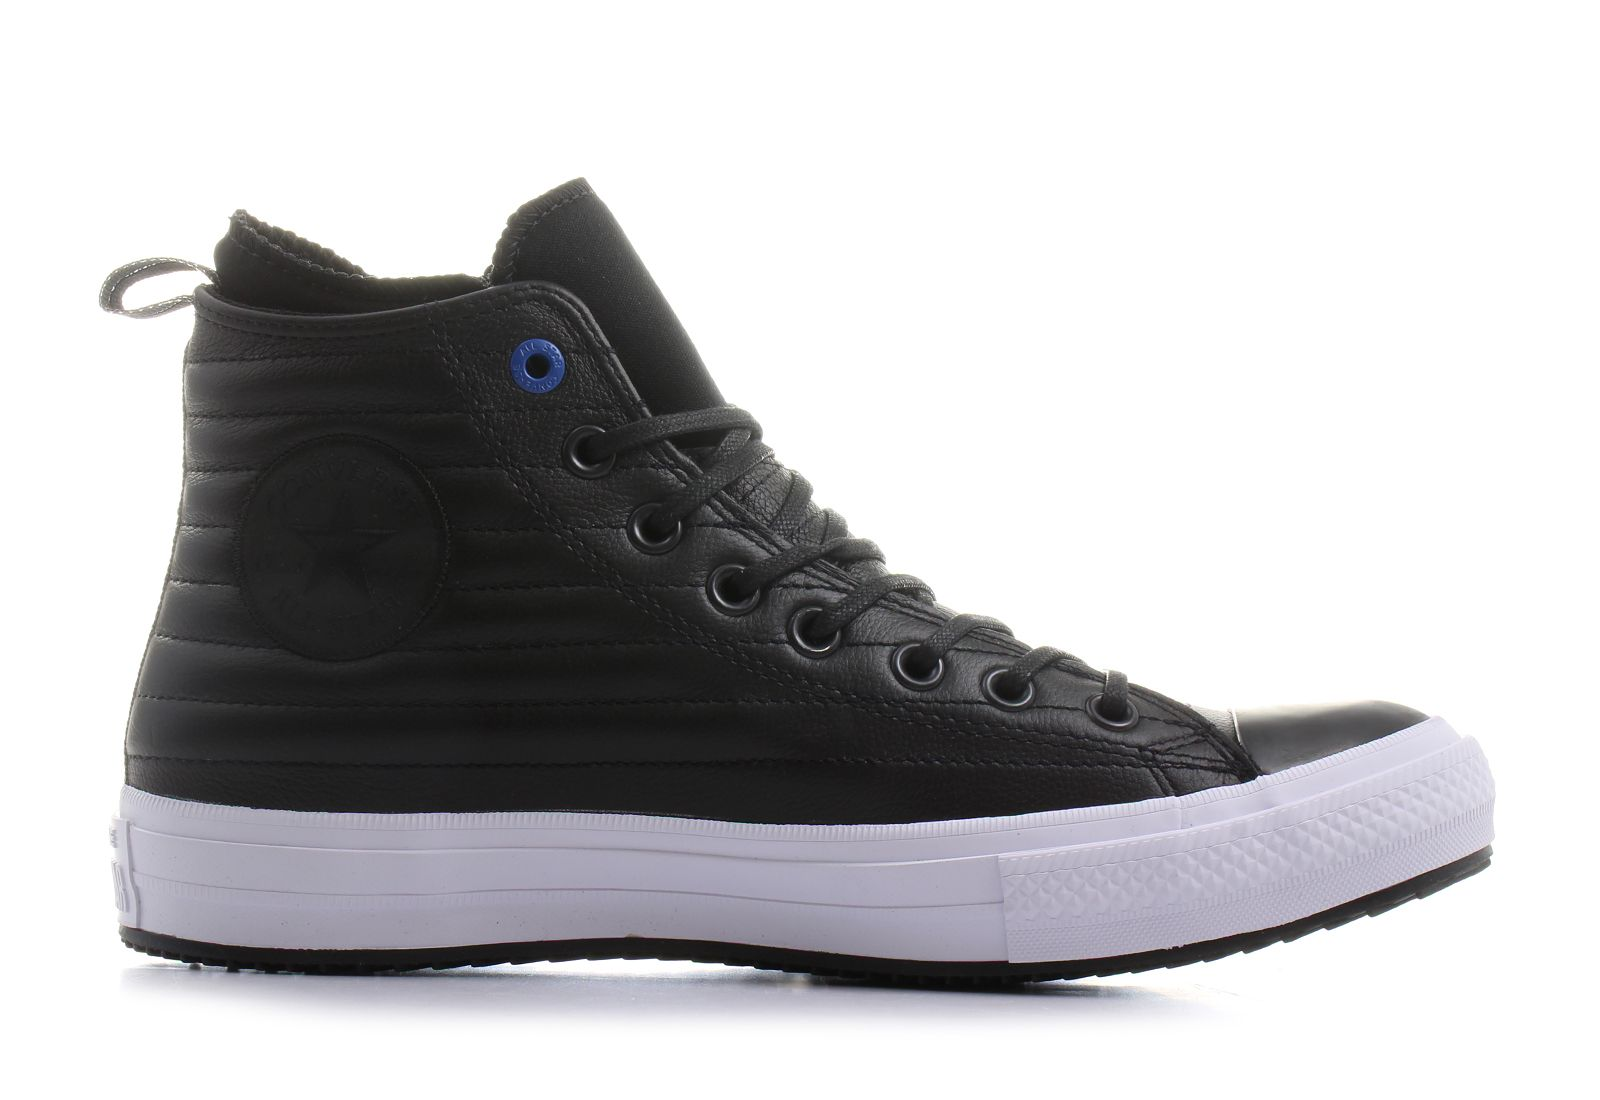 Converse Tenisky - Chuck Taylor Waterproof Boot Quilted Leather ... 322e86cdc8